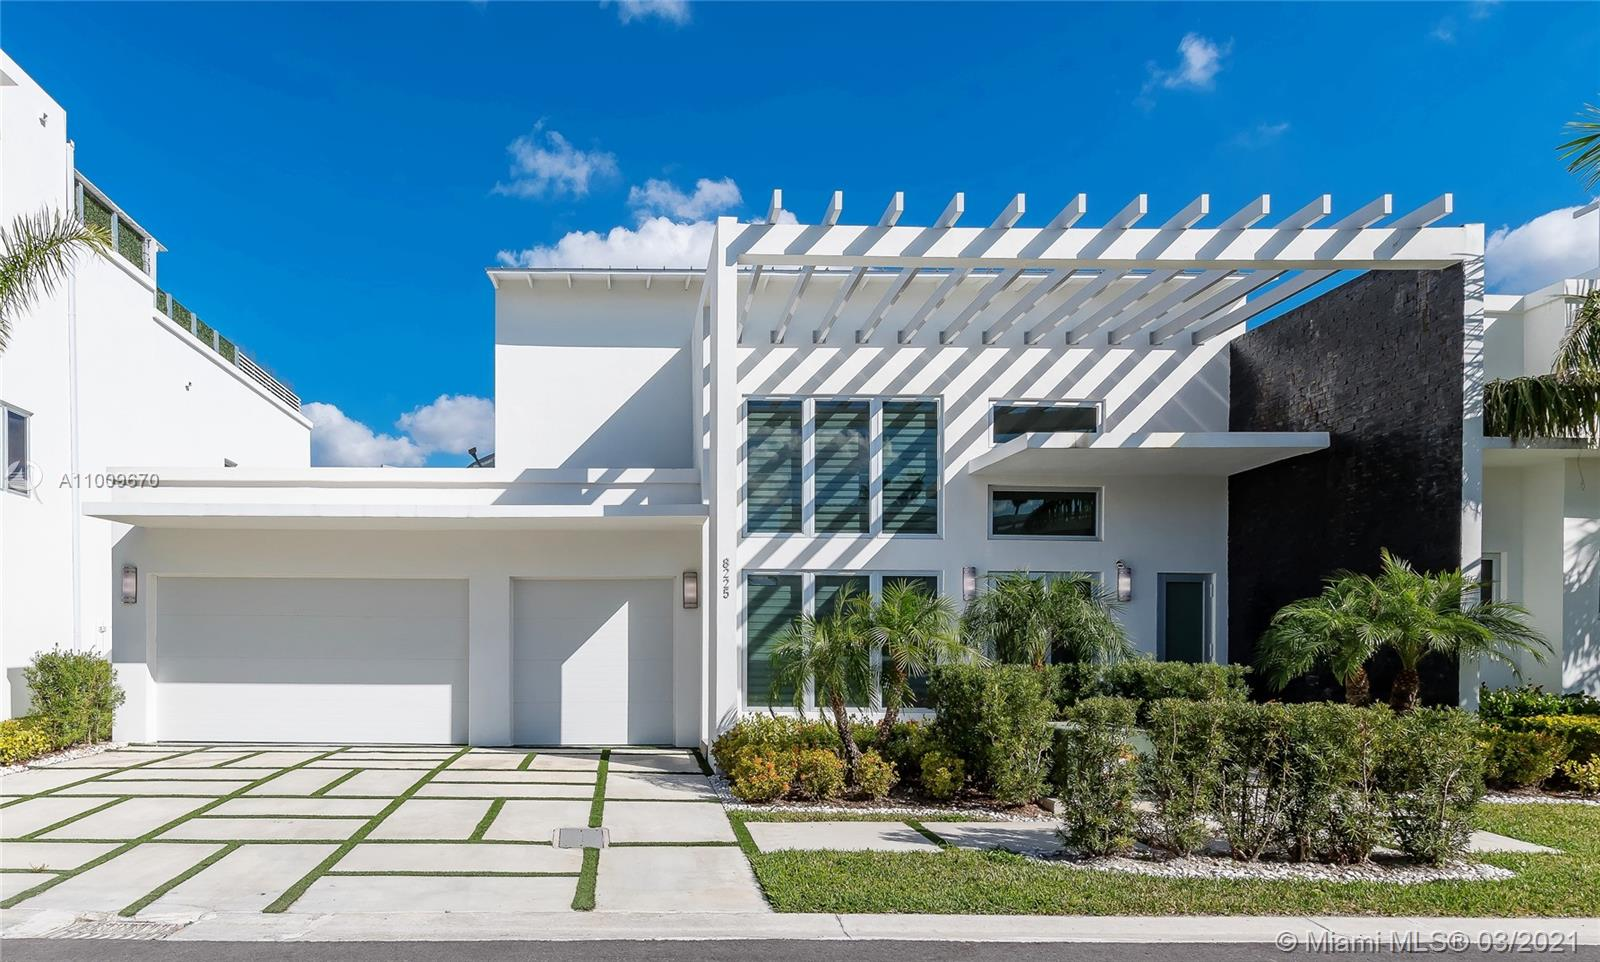 Oasis Park Square - 8225 NW 33rd Ter, Miami, FL 33122